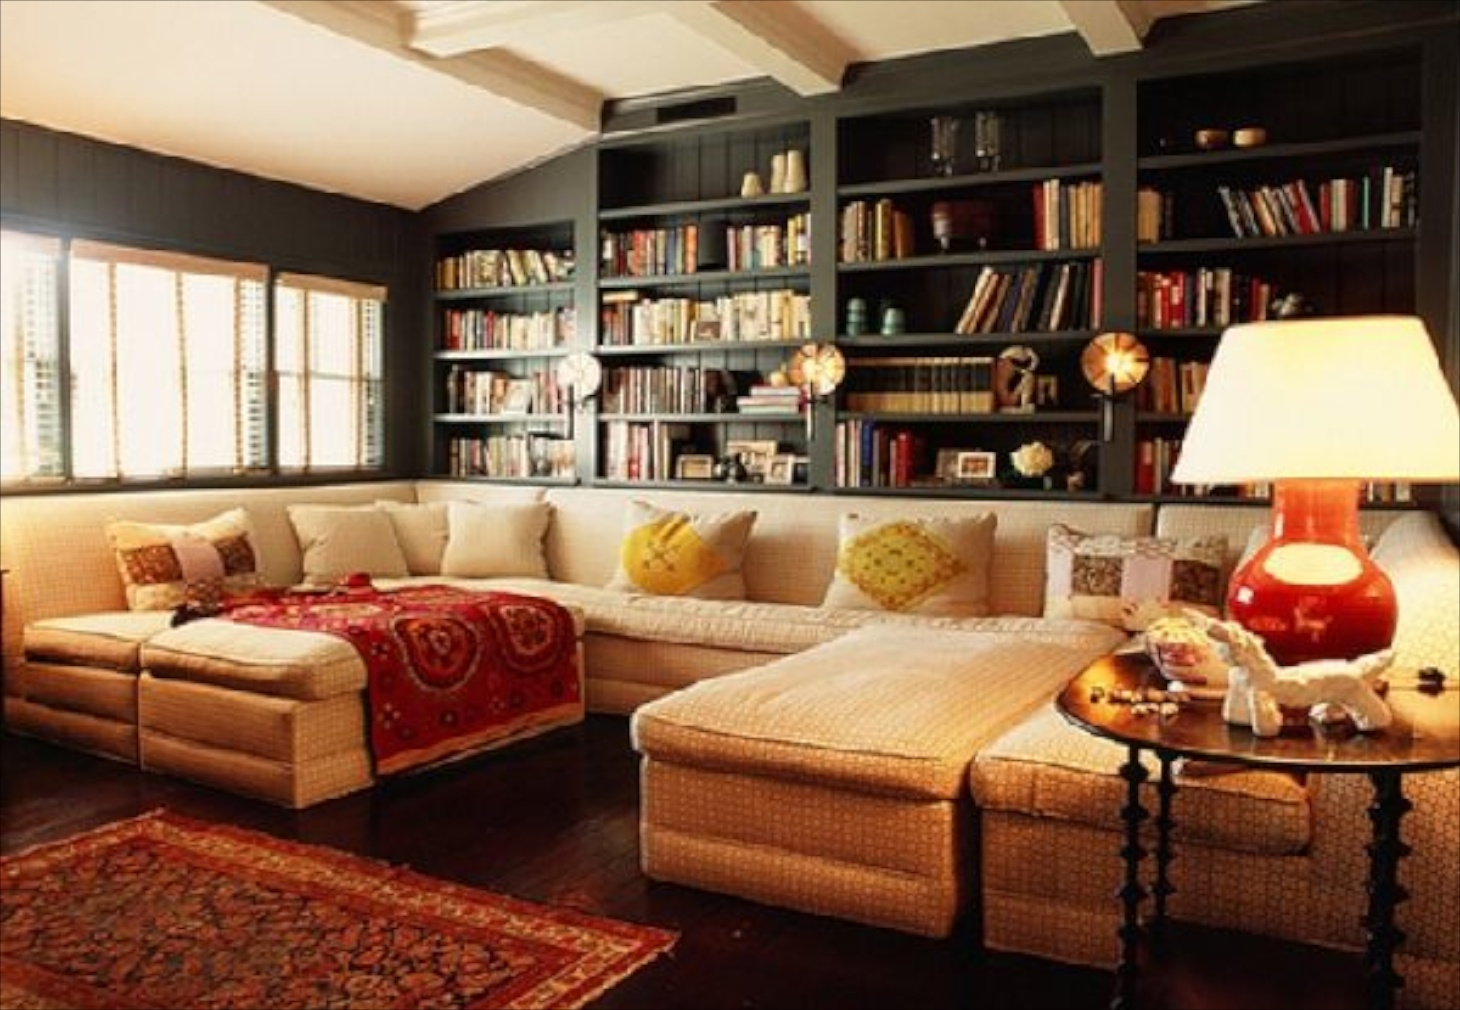 23 sofas and bookcase ideas in cozy living room design with mixture classic and modern styles whg - Living room traditional decorating ideas ...